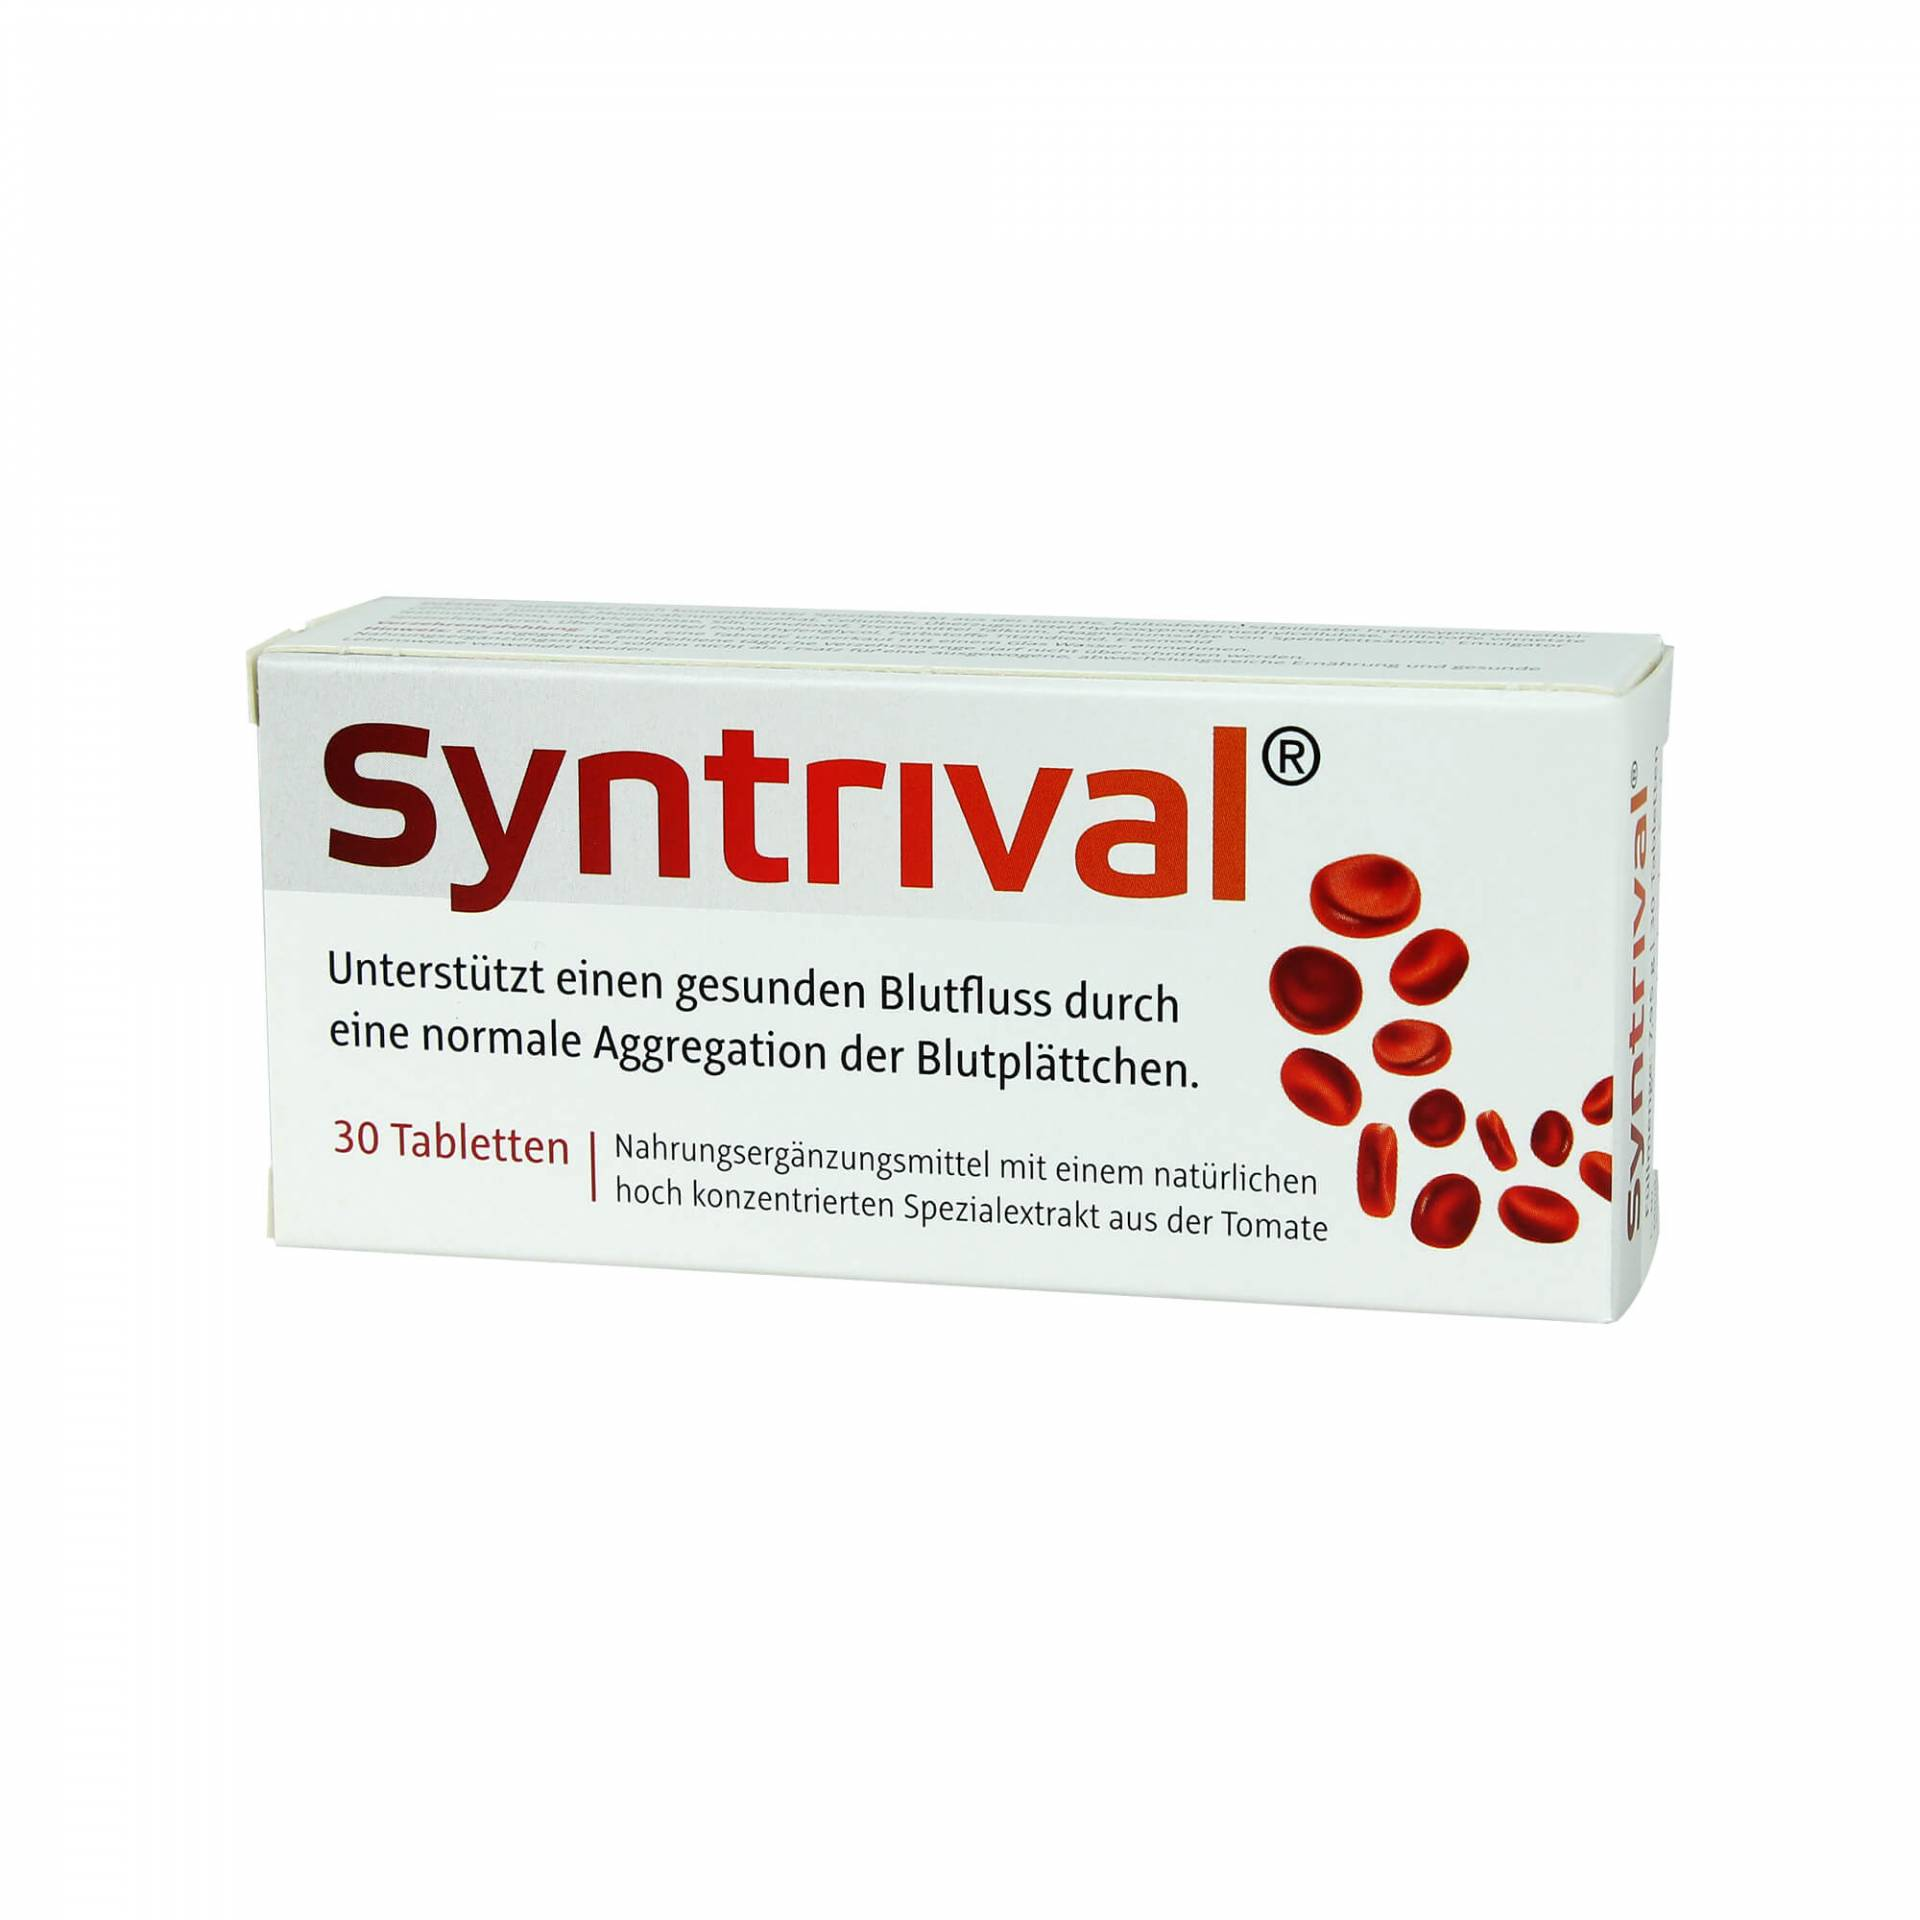 Syntrival Tabletten von Wörwag Pharma GmbH & Co. KG